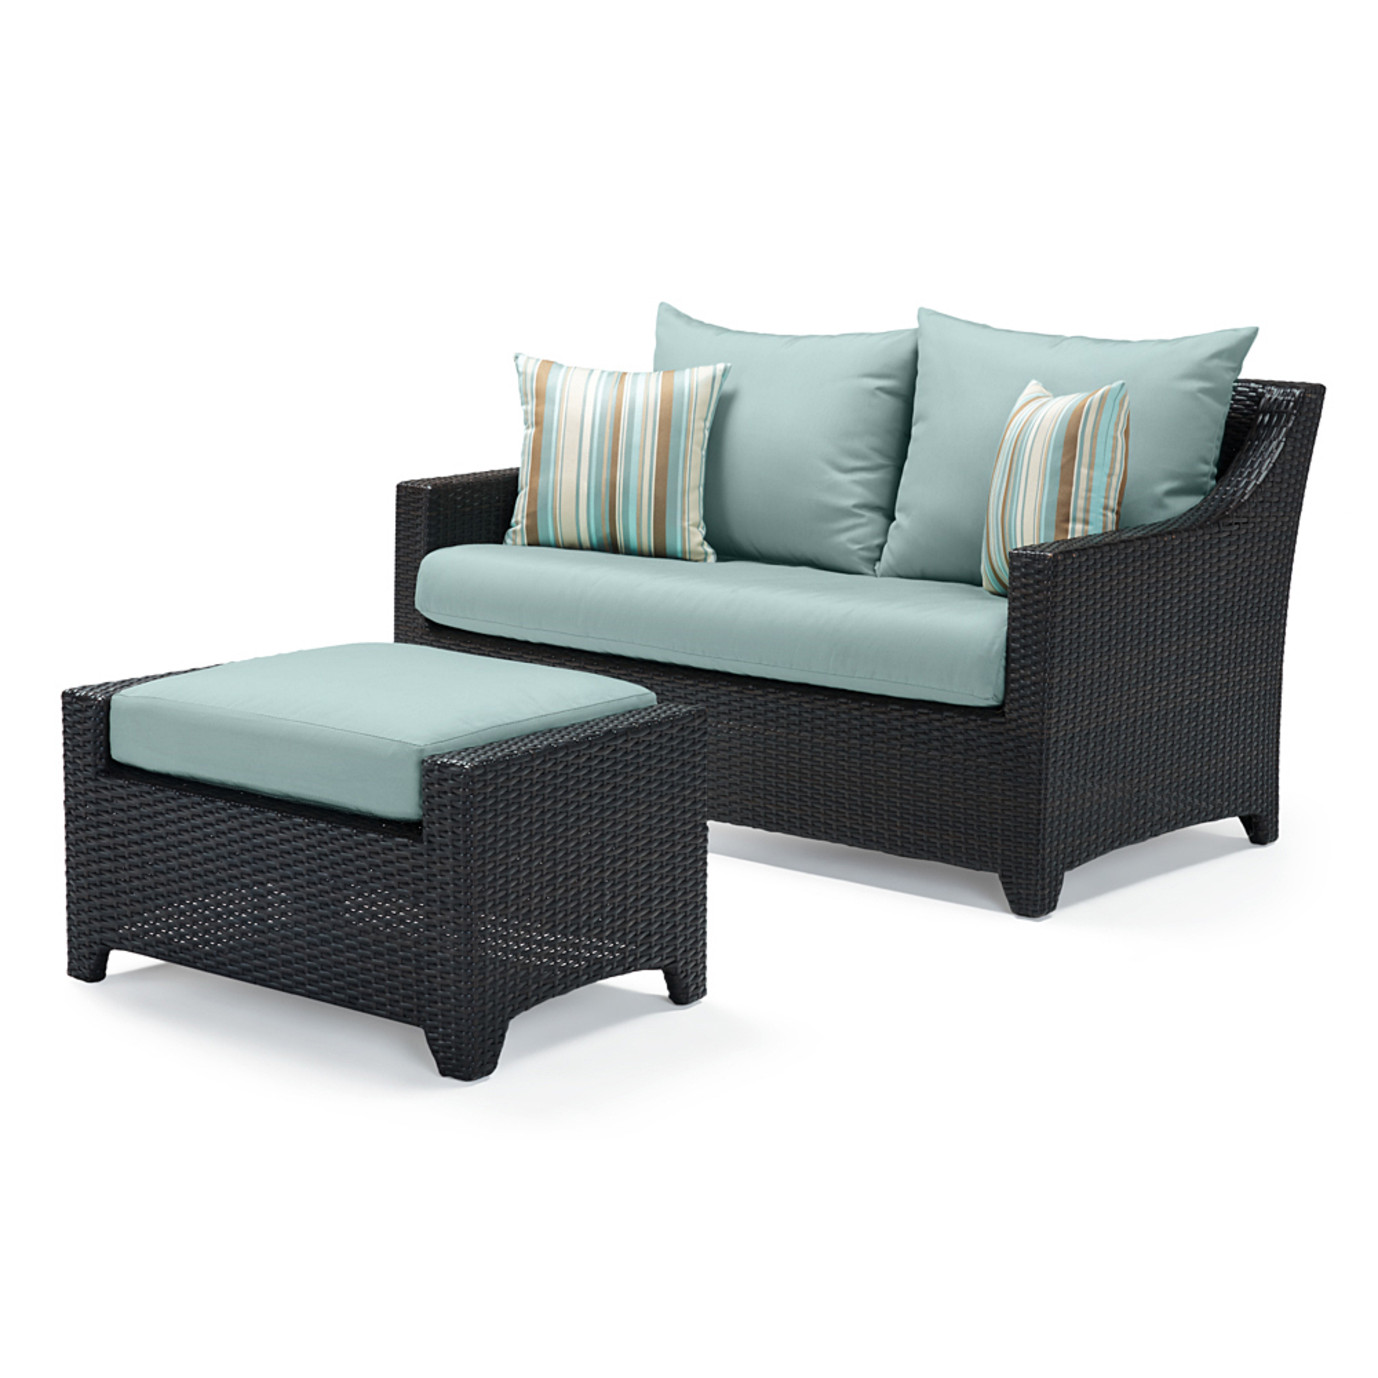 Deco™ Loveseat and Ottoman - Bliss Blue